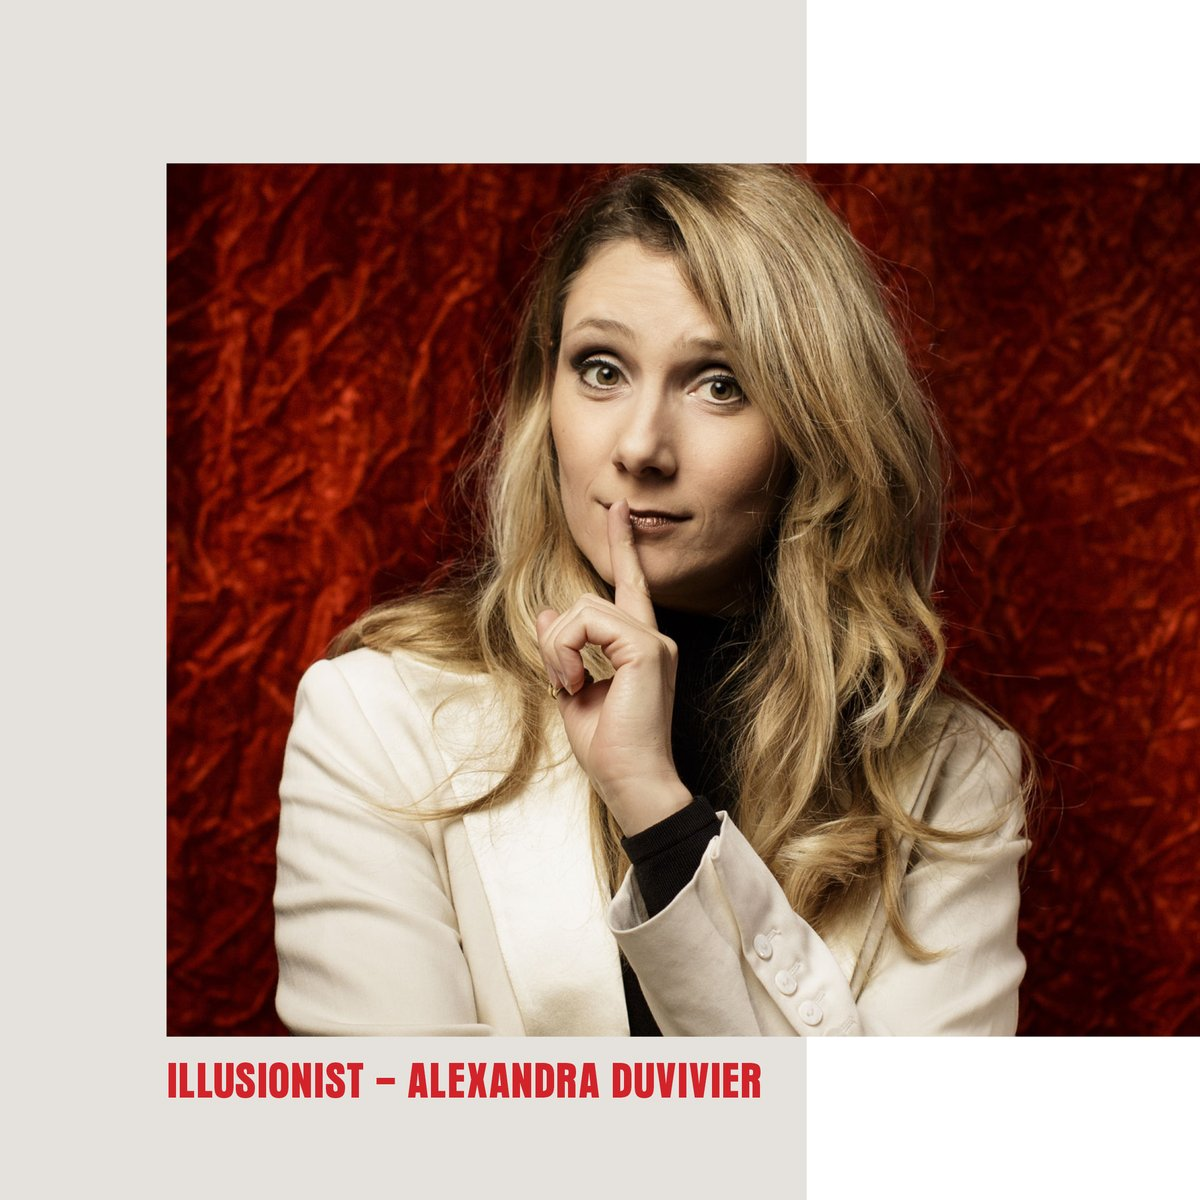 Meet our #magicians - Illusionist Alexandra Duvivier @ledoublefond to learn more go here  #Magic #illusionist #indiefilm #cardmagic #film #womeninmagic #FridayFeeling #movies #magician #magictrick #Mysteries